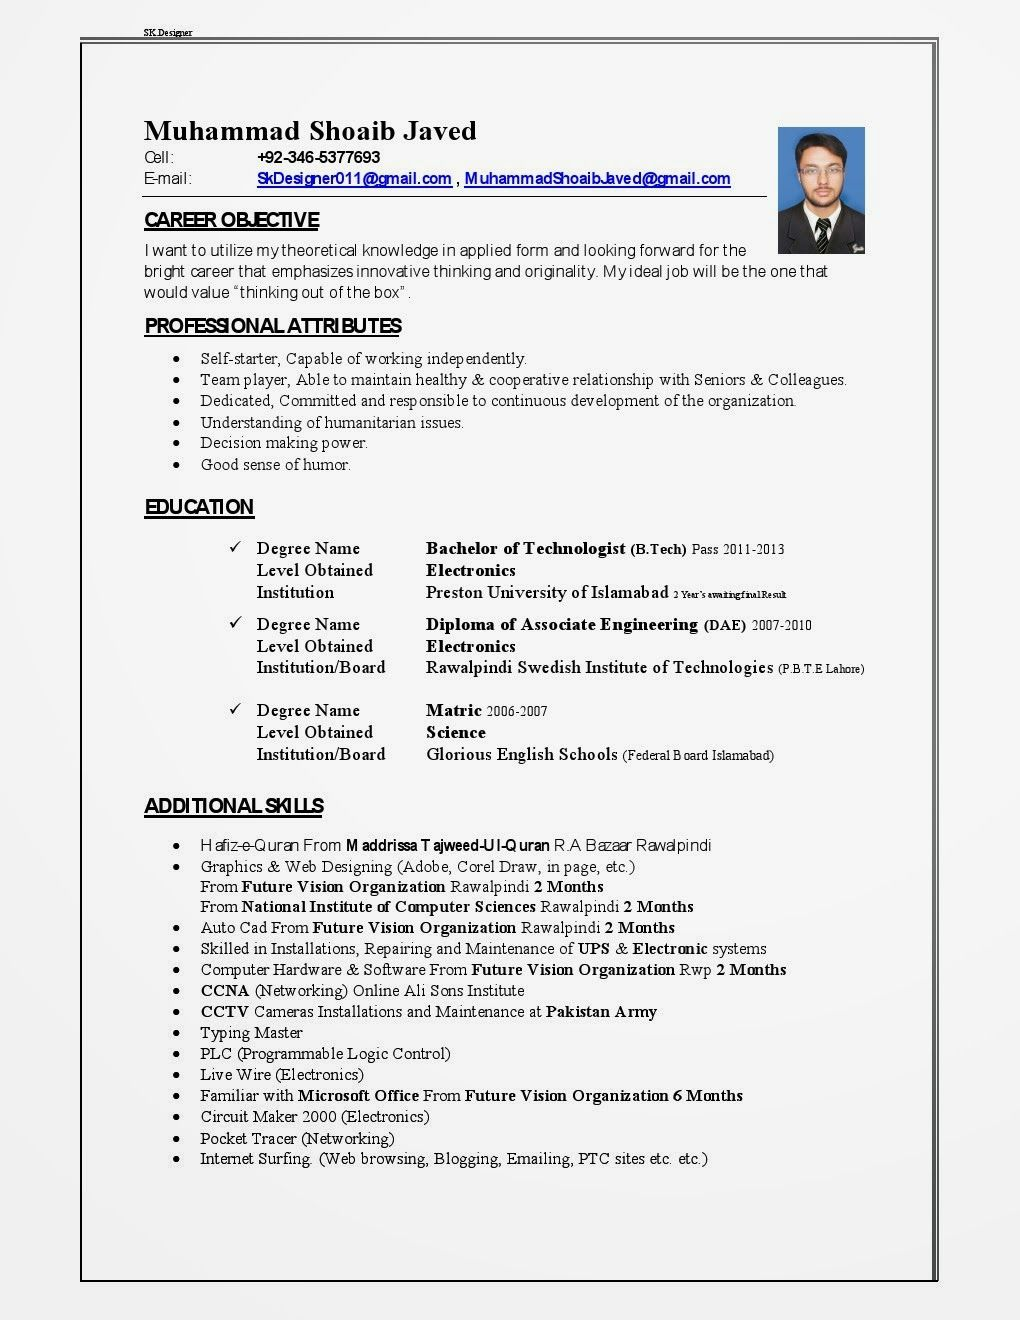 Online professional resume writing services nyc